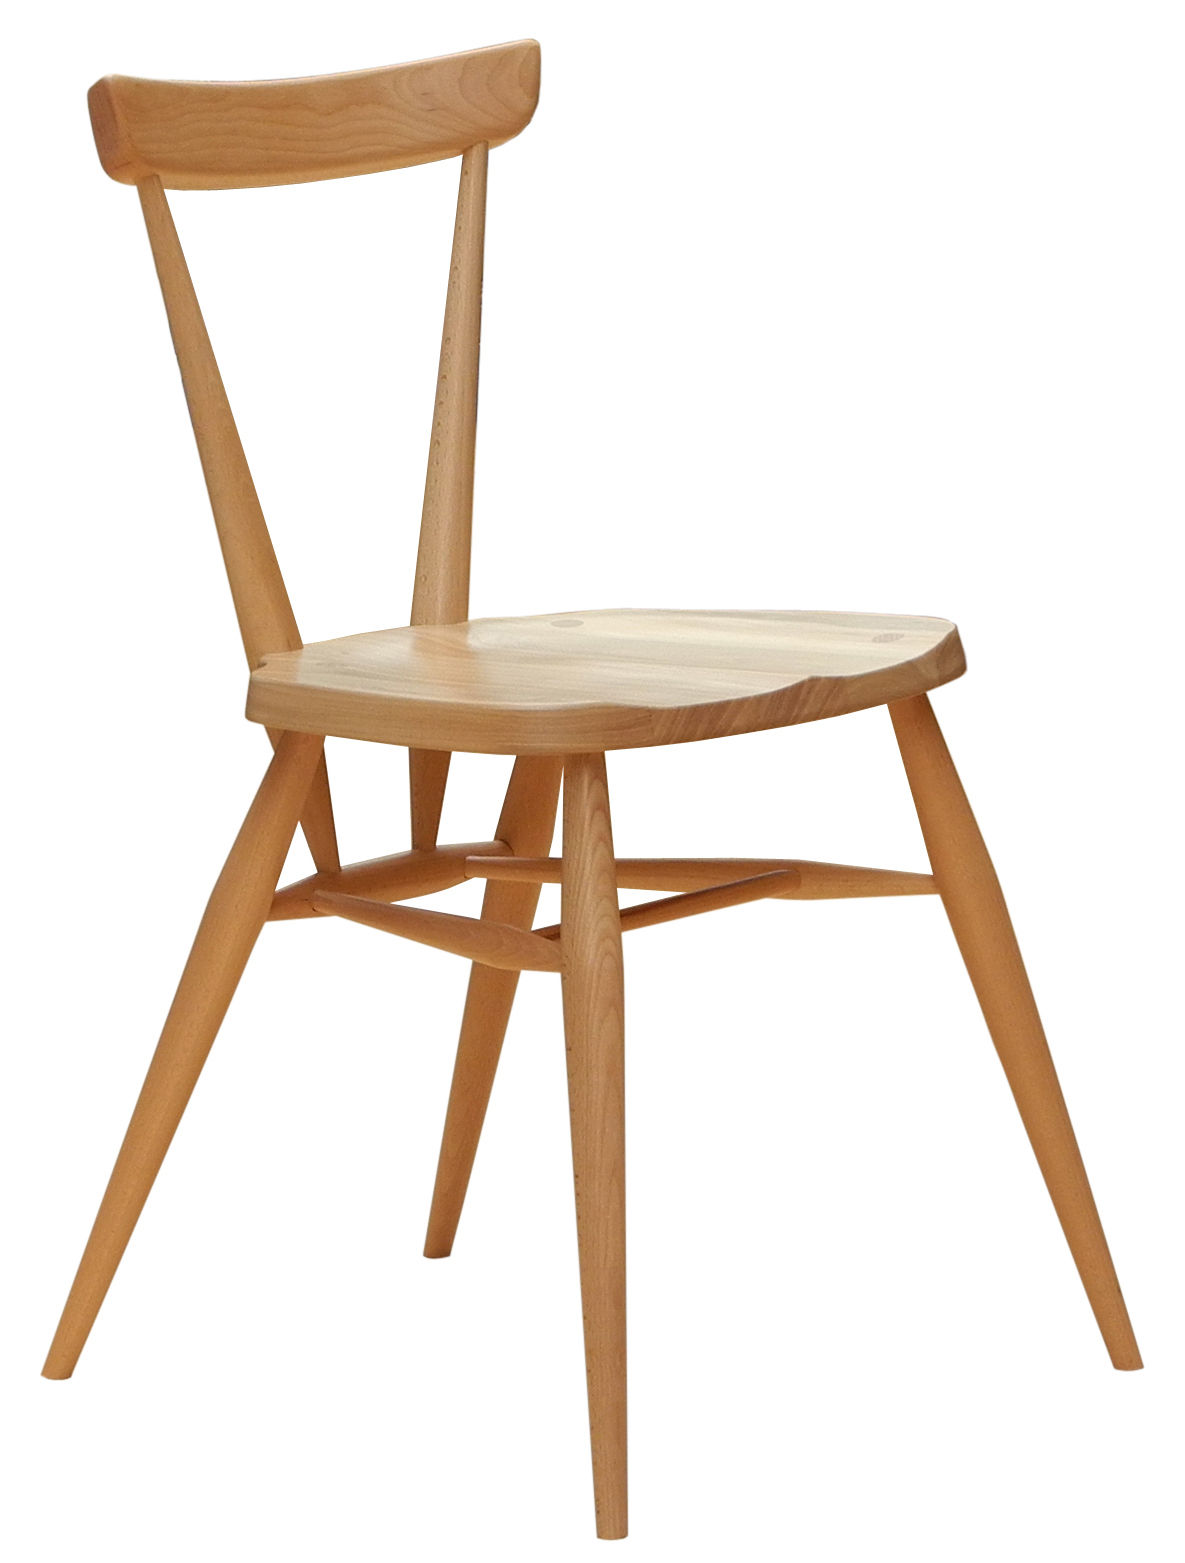 Furniture - Chairs - Stacking Chair - Wood / Reissue 1957 by Ercol - Natural wood - Natural beechwood, Solid elm